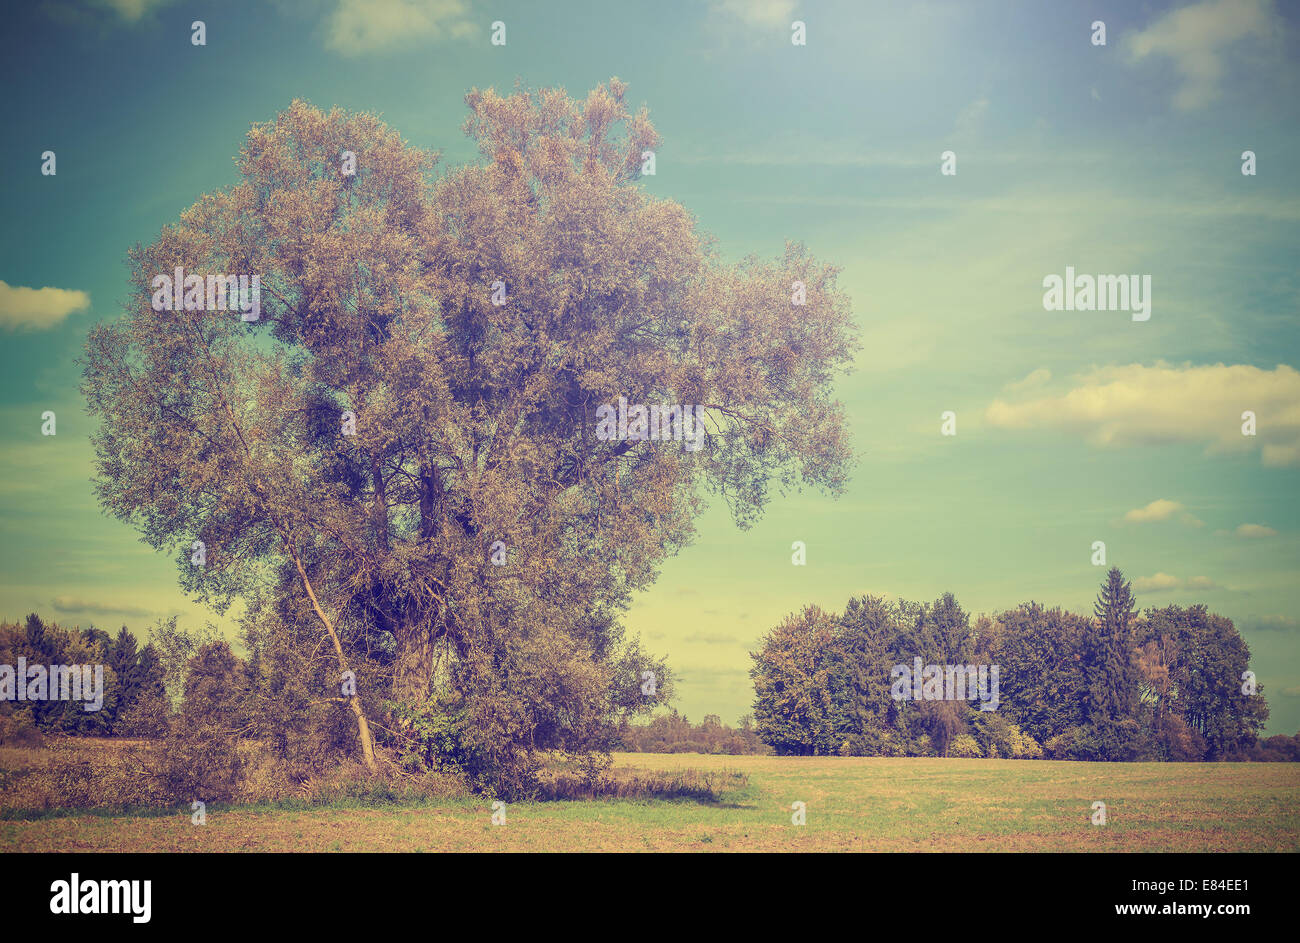 Vintage picture of autumn field with trees, retro filtered. - Stock Image